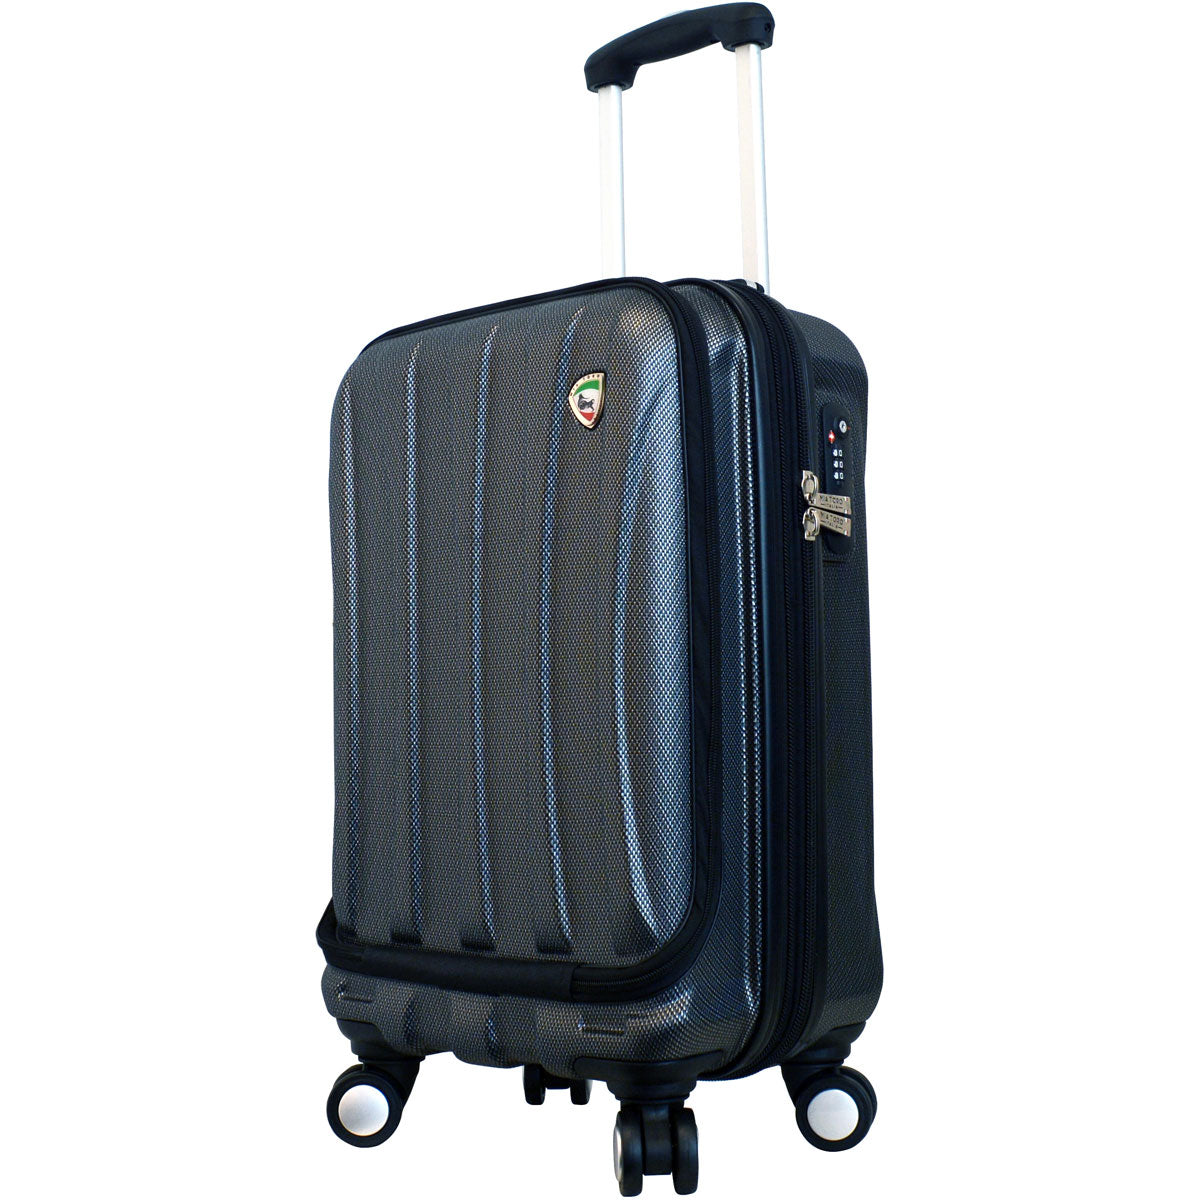 Mia Toro Tasca Fusion Hardside Spinner Carry On